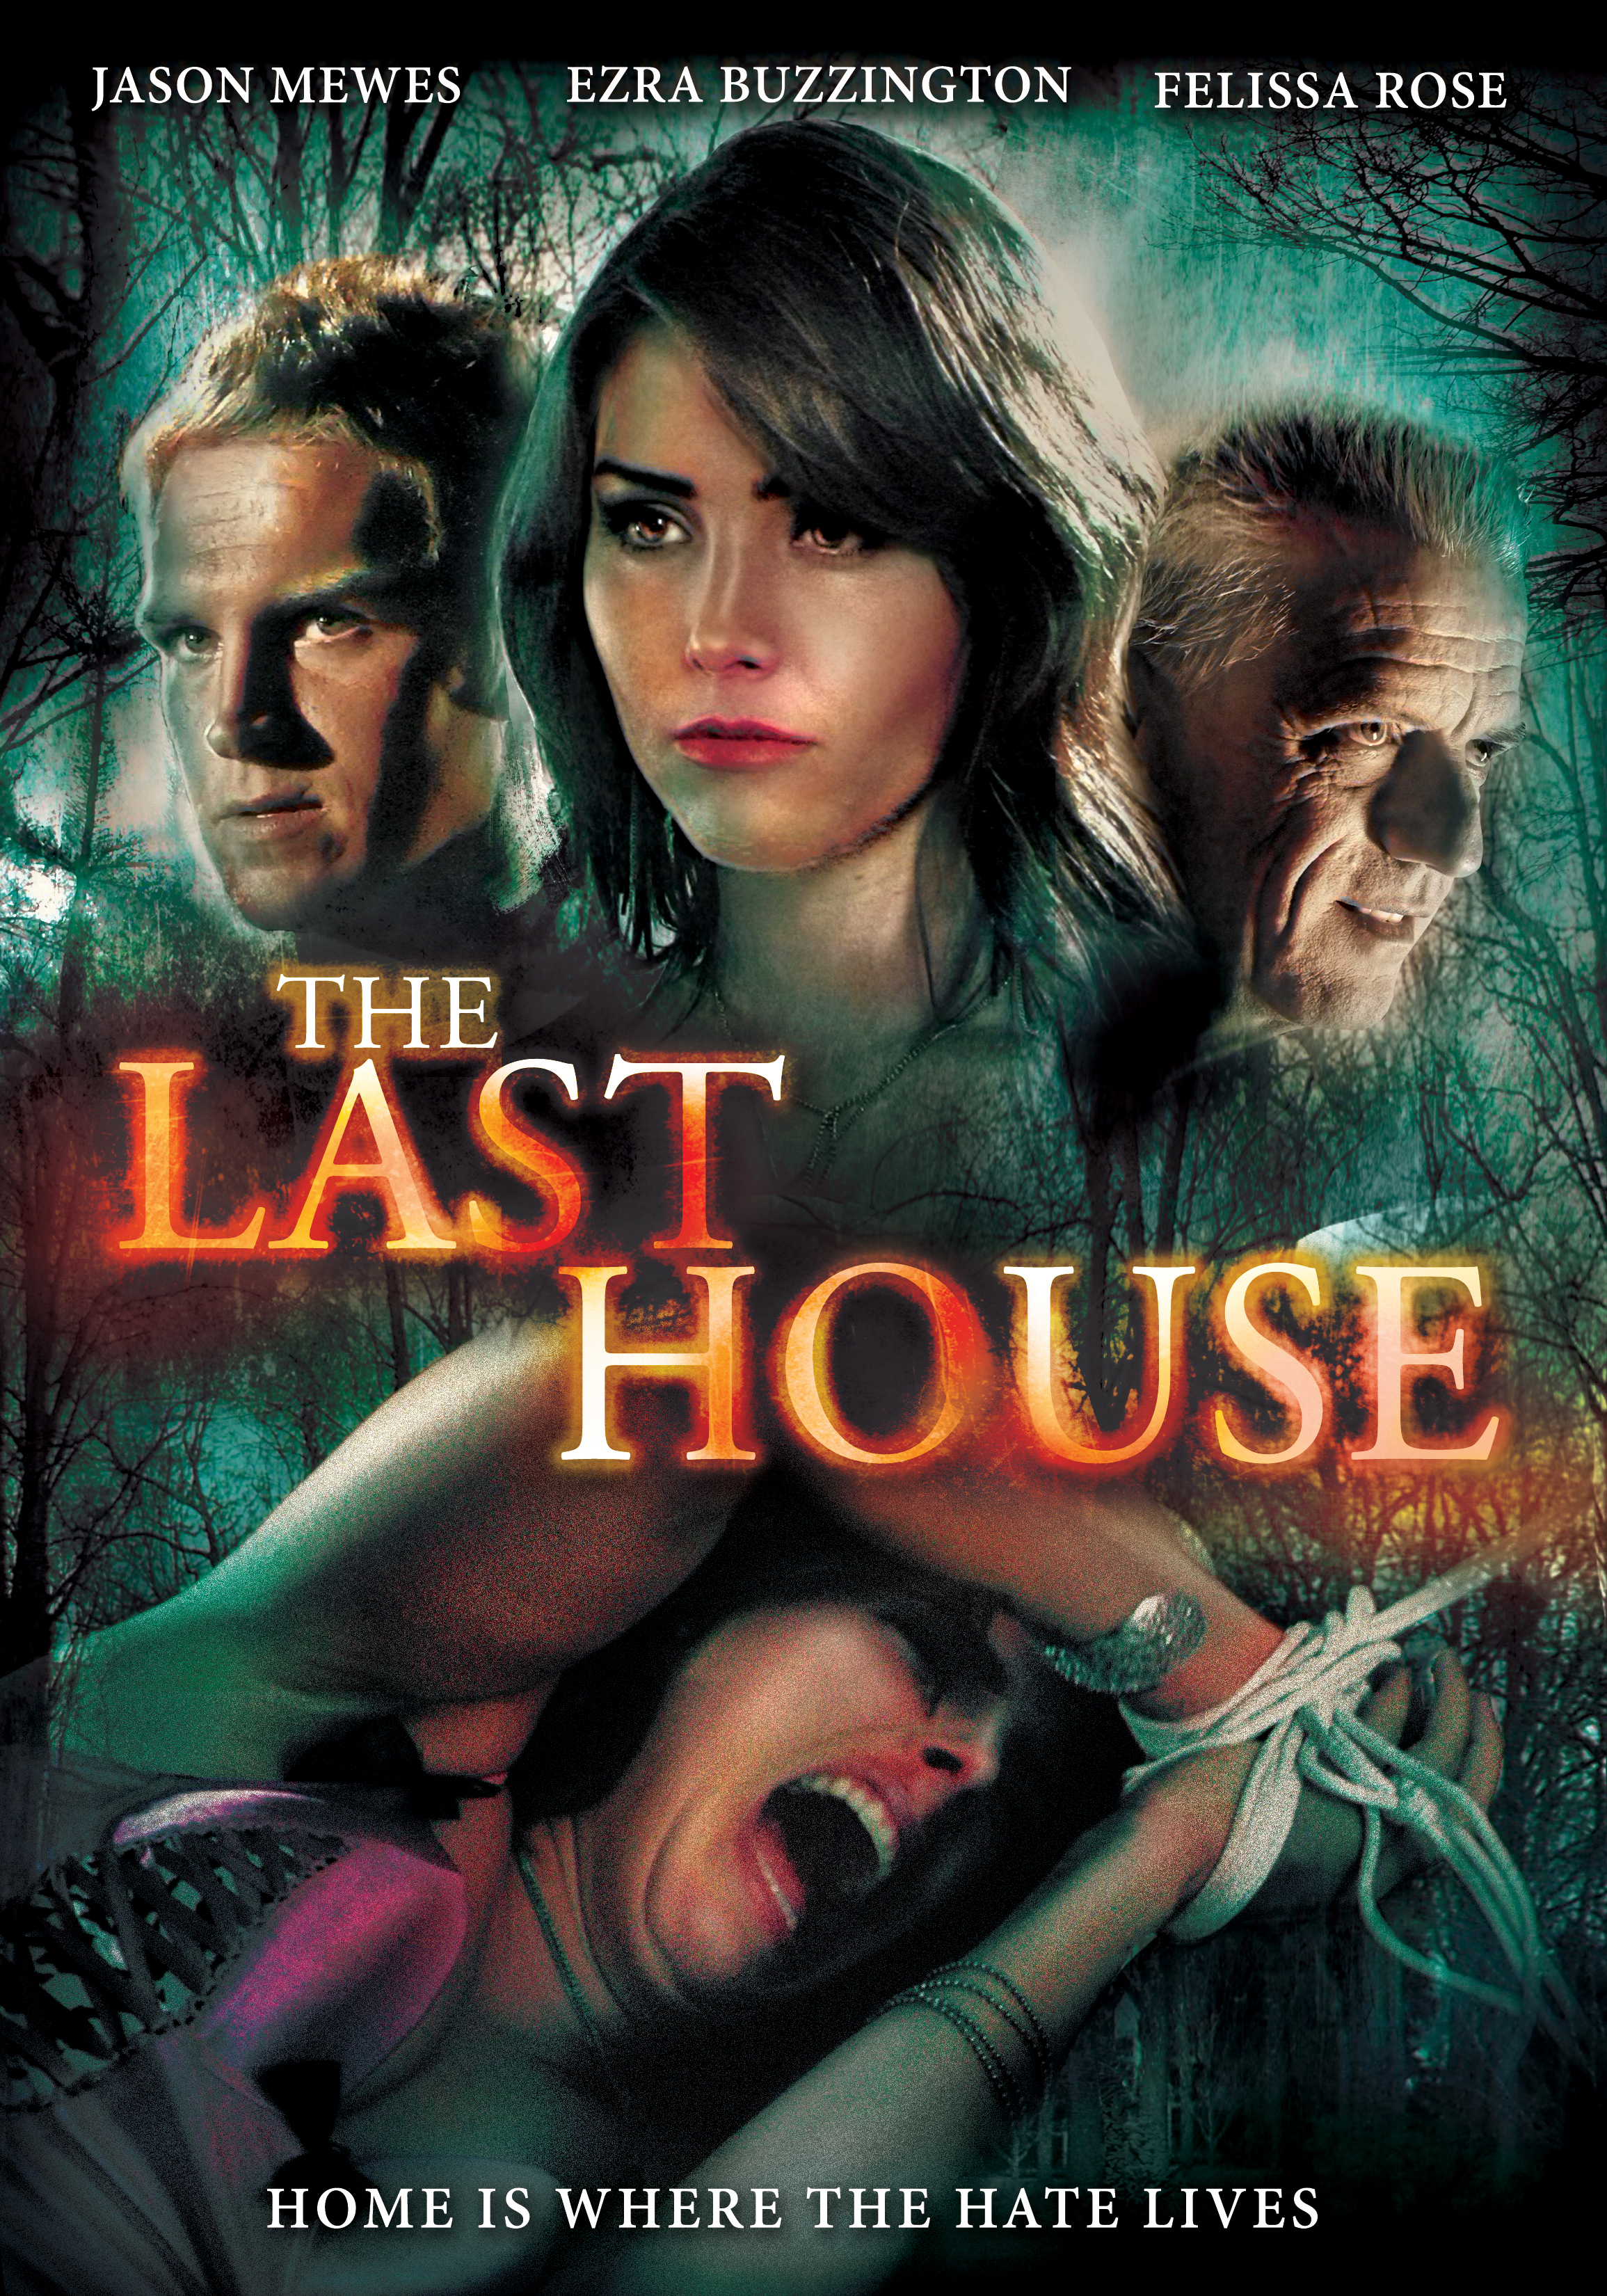 The last house photo